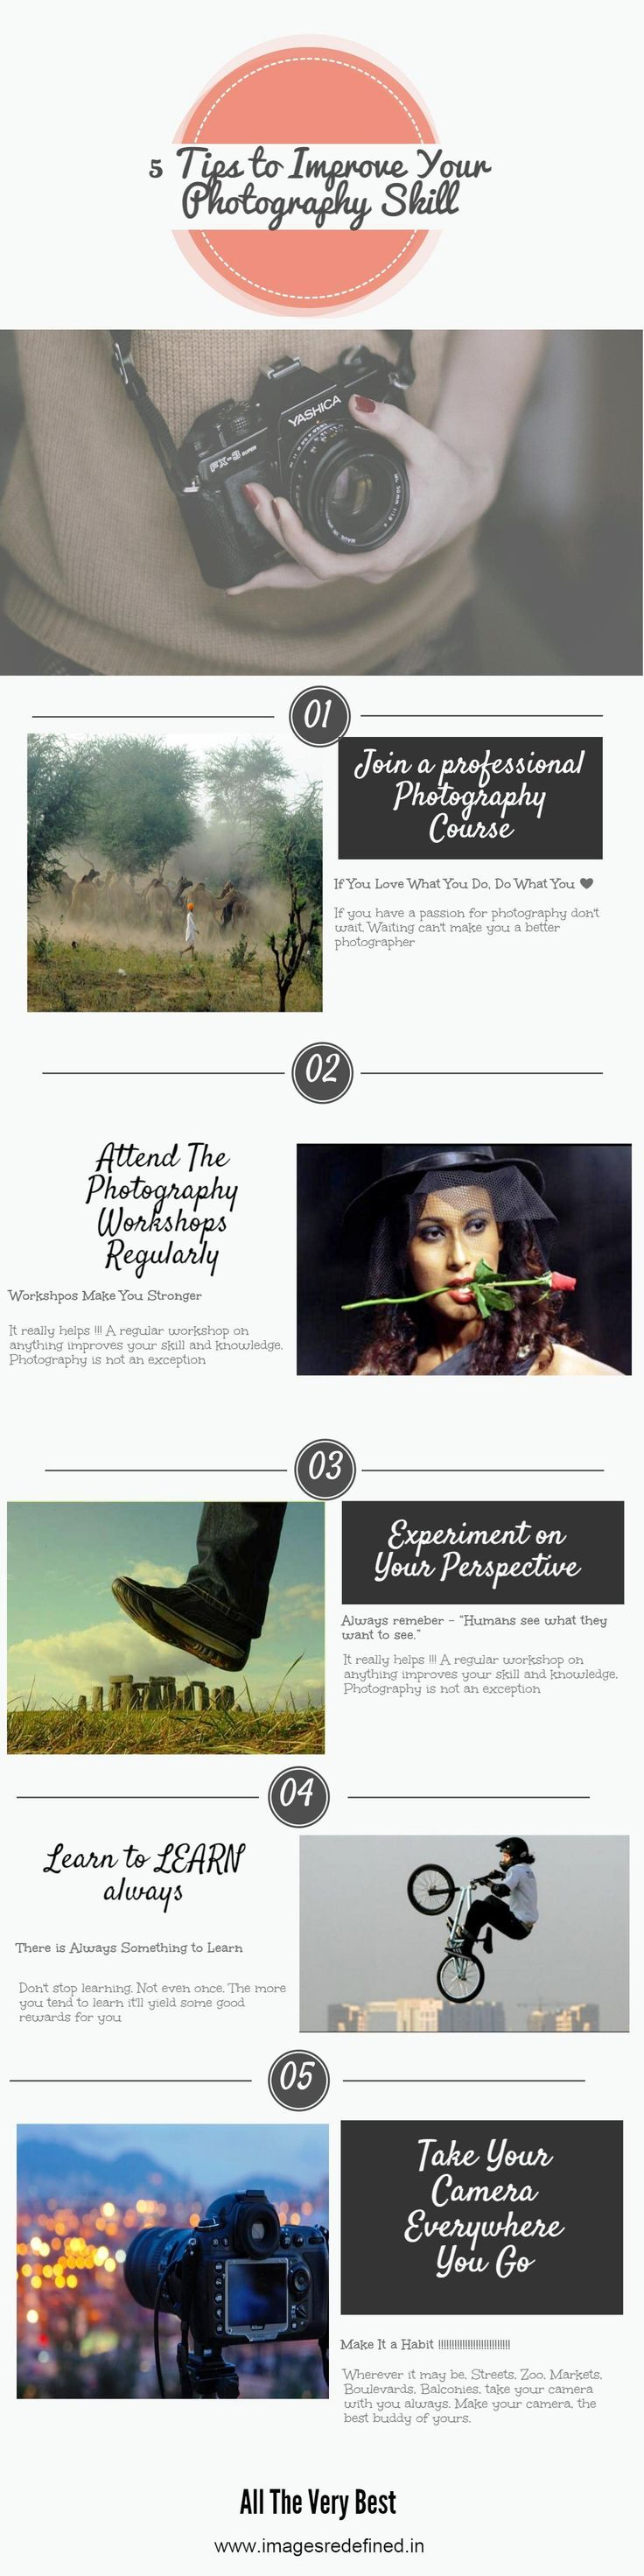 If you love seeing through the lens and want to become a professional photographer, These 5 tips might help to achieve what you want. For more information please visit: www.imagesredefined.in